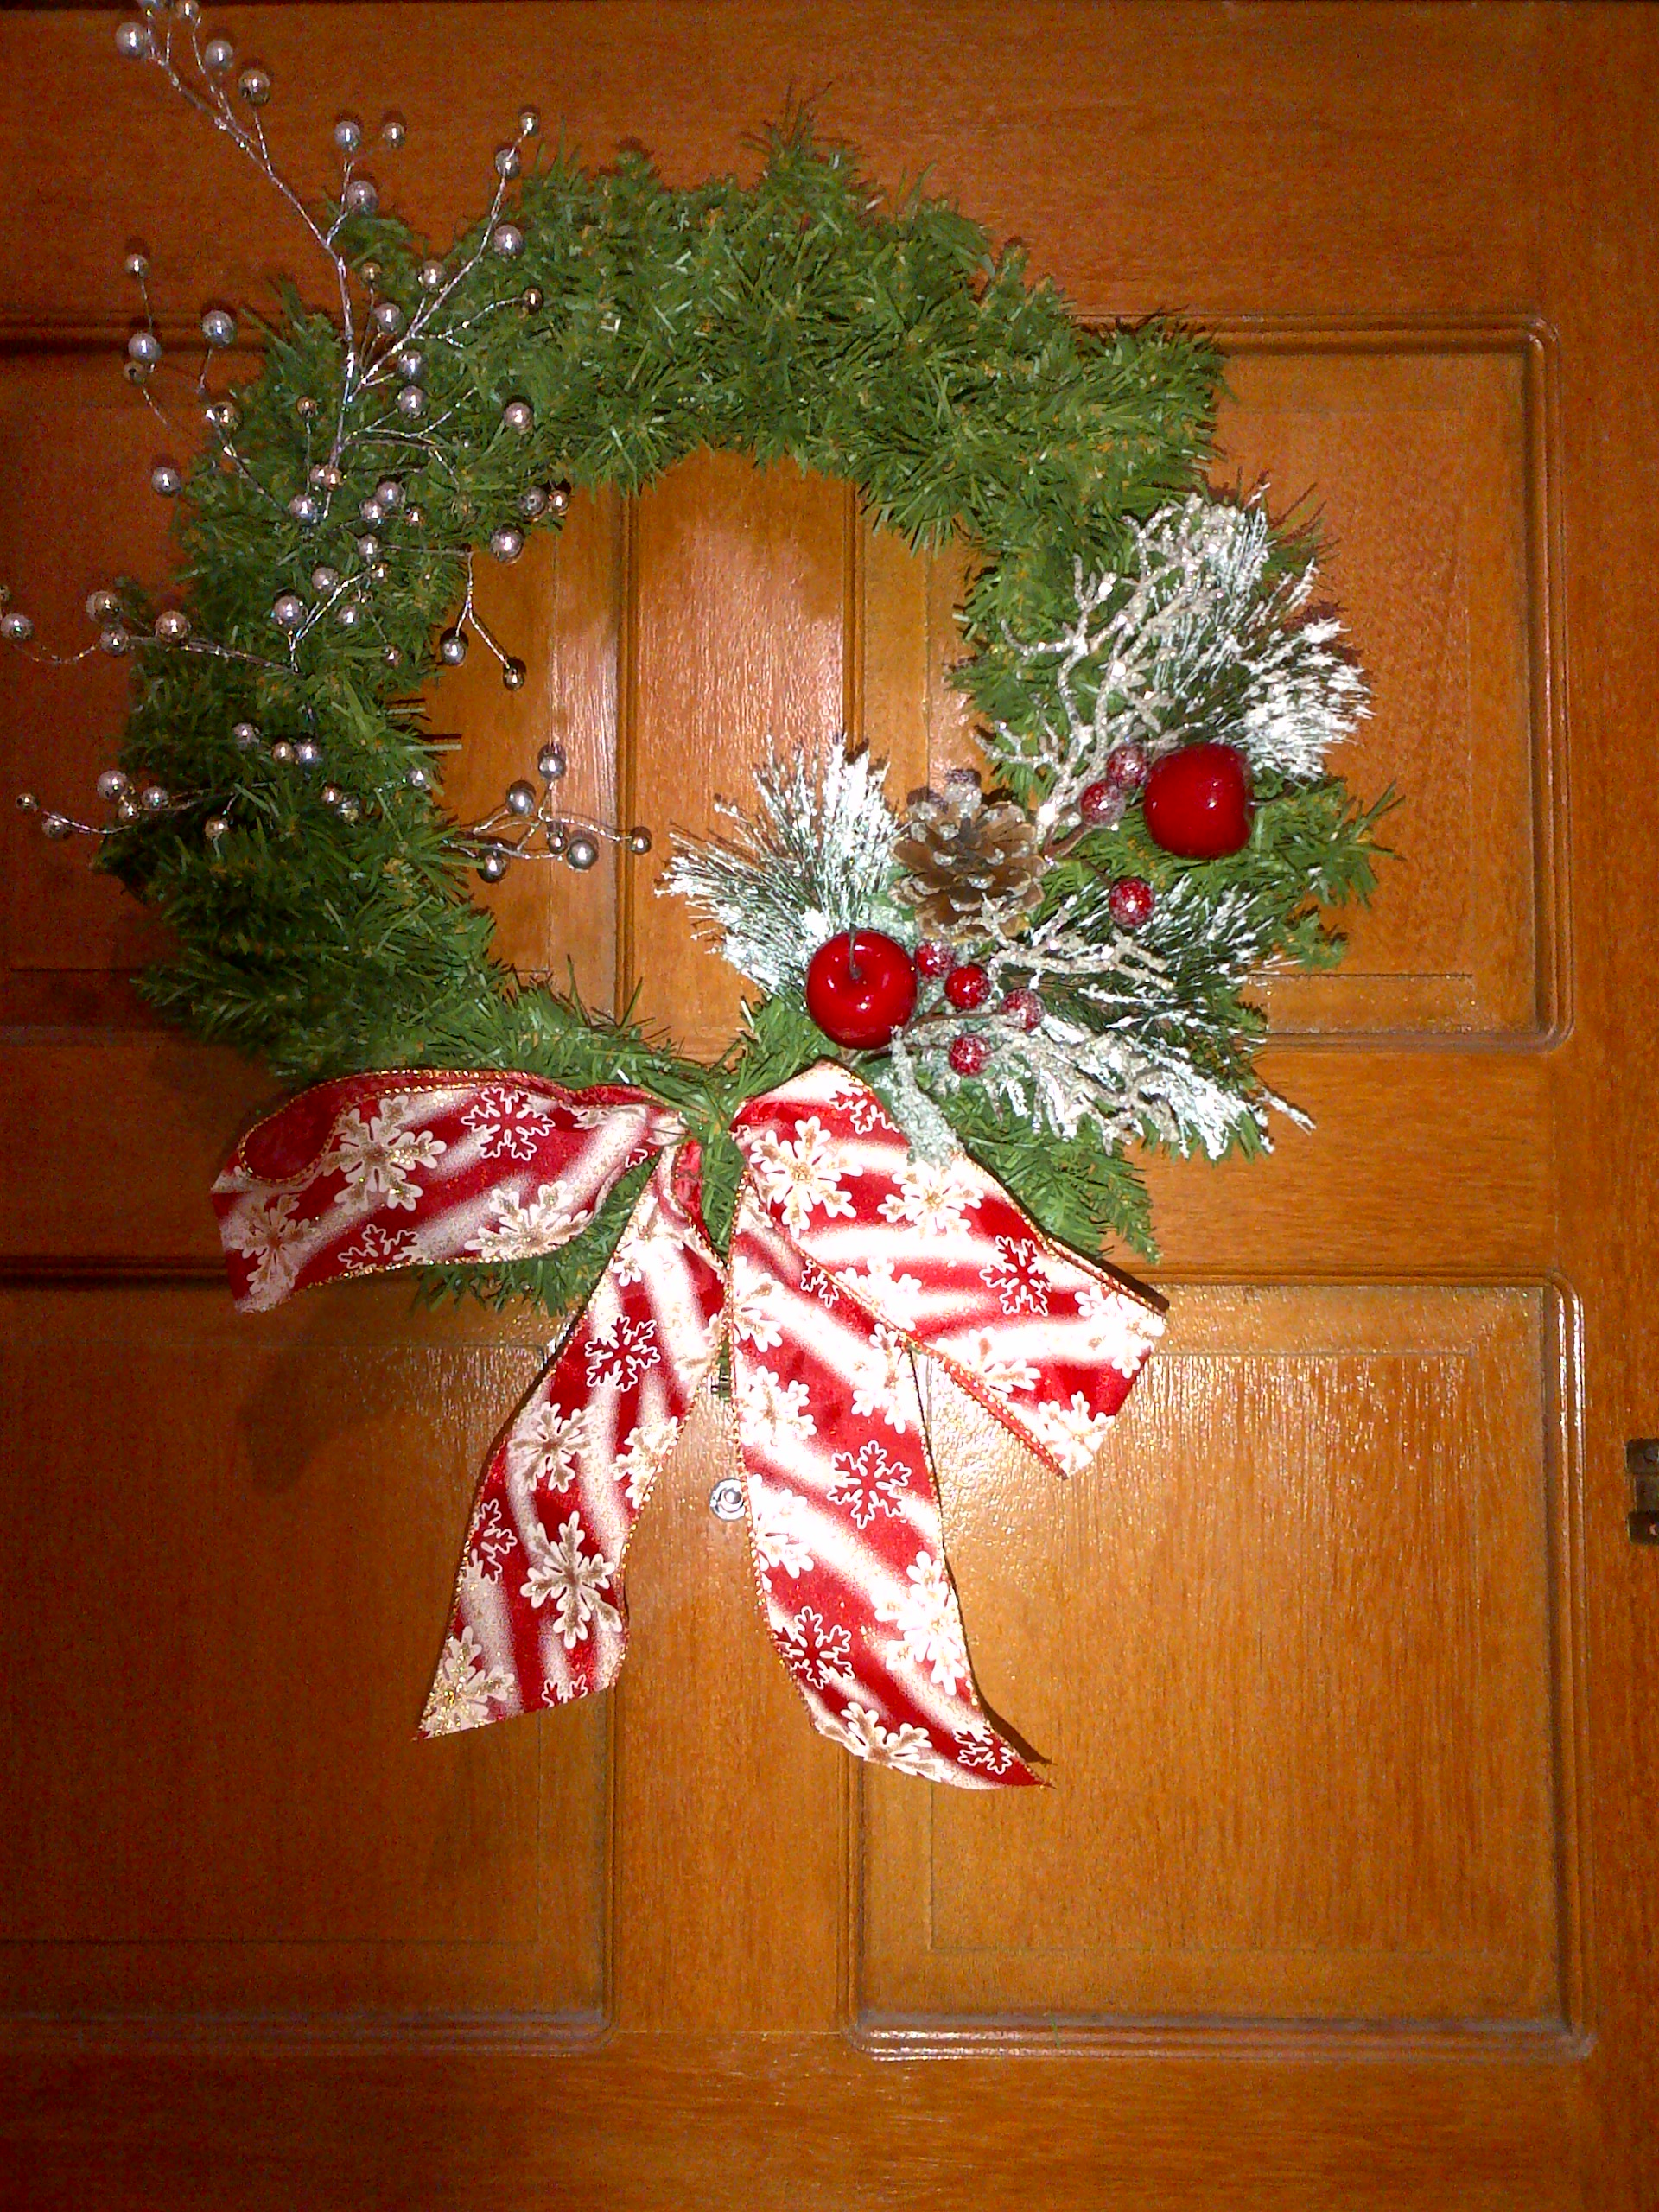 xmas door wreath 2013